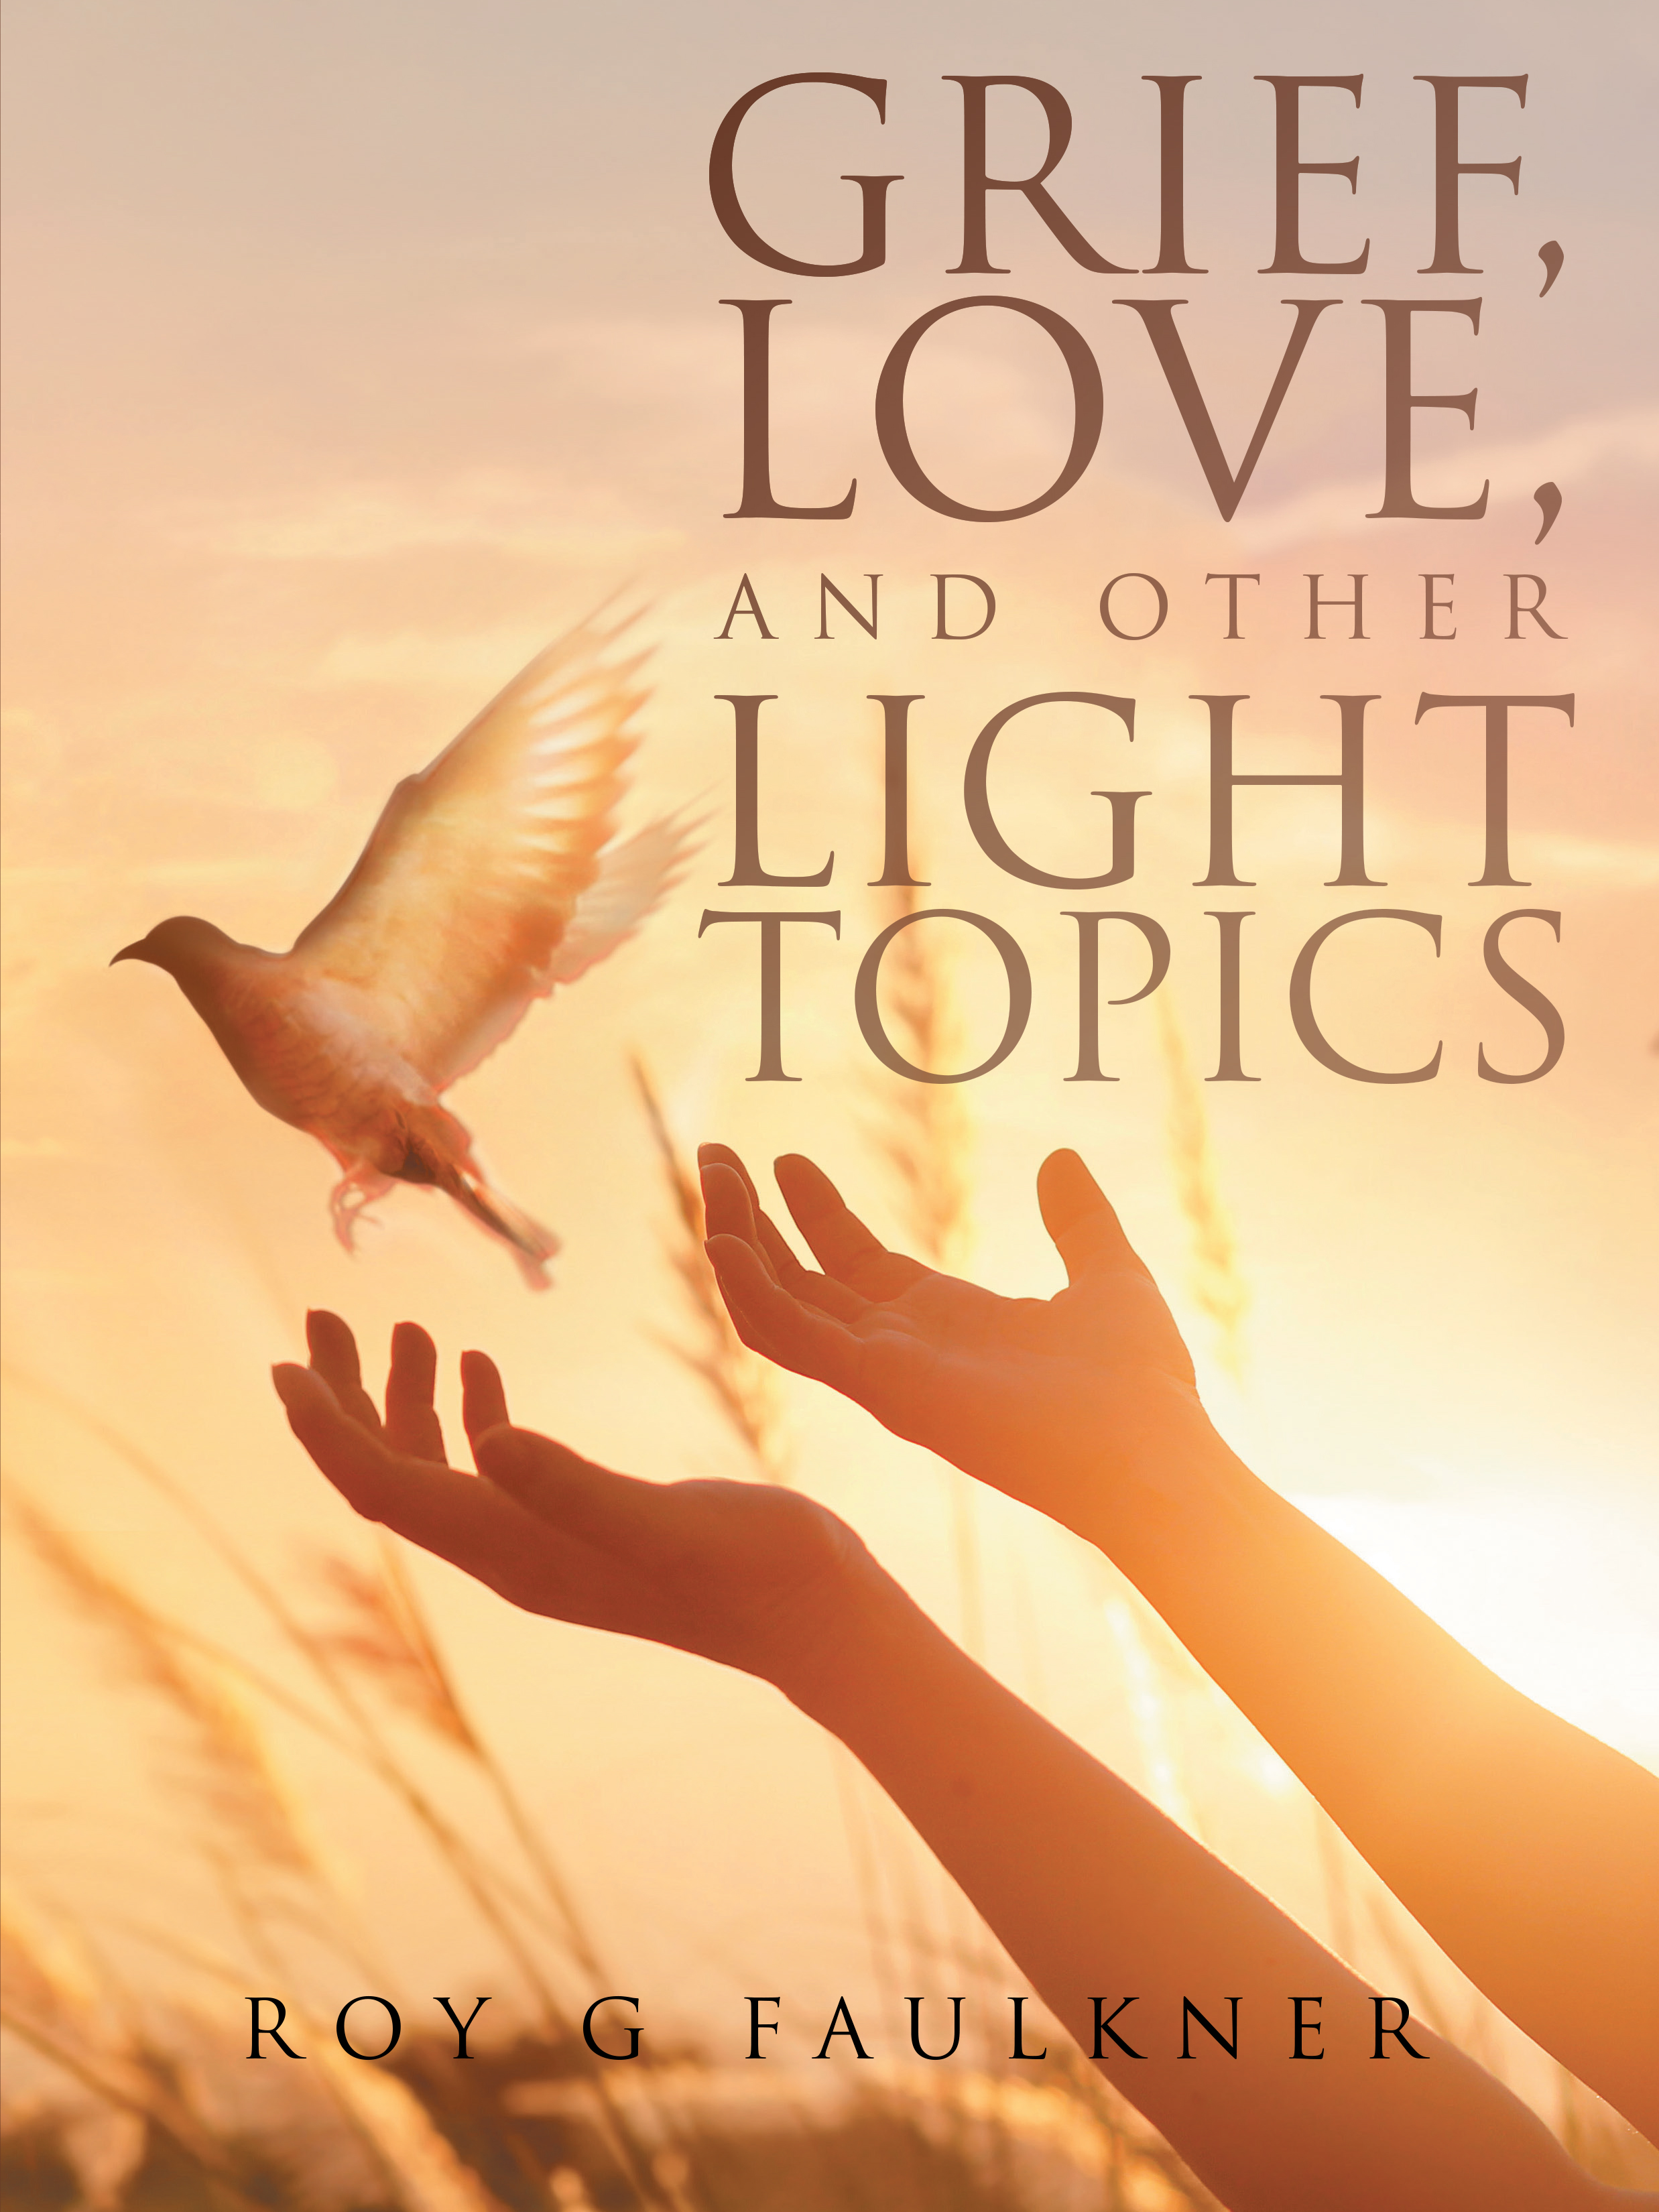 GRIEF, LOVE, AND OTHER LIGHT TOPICS